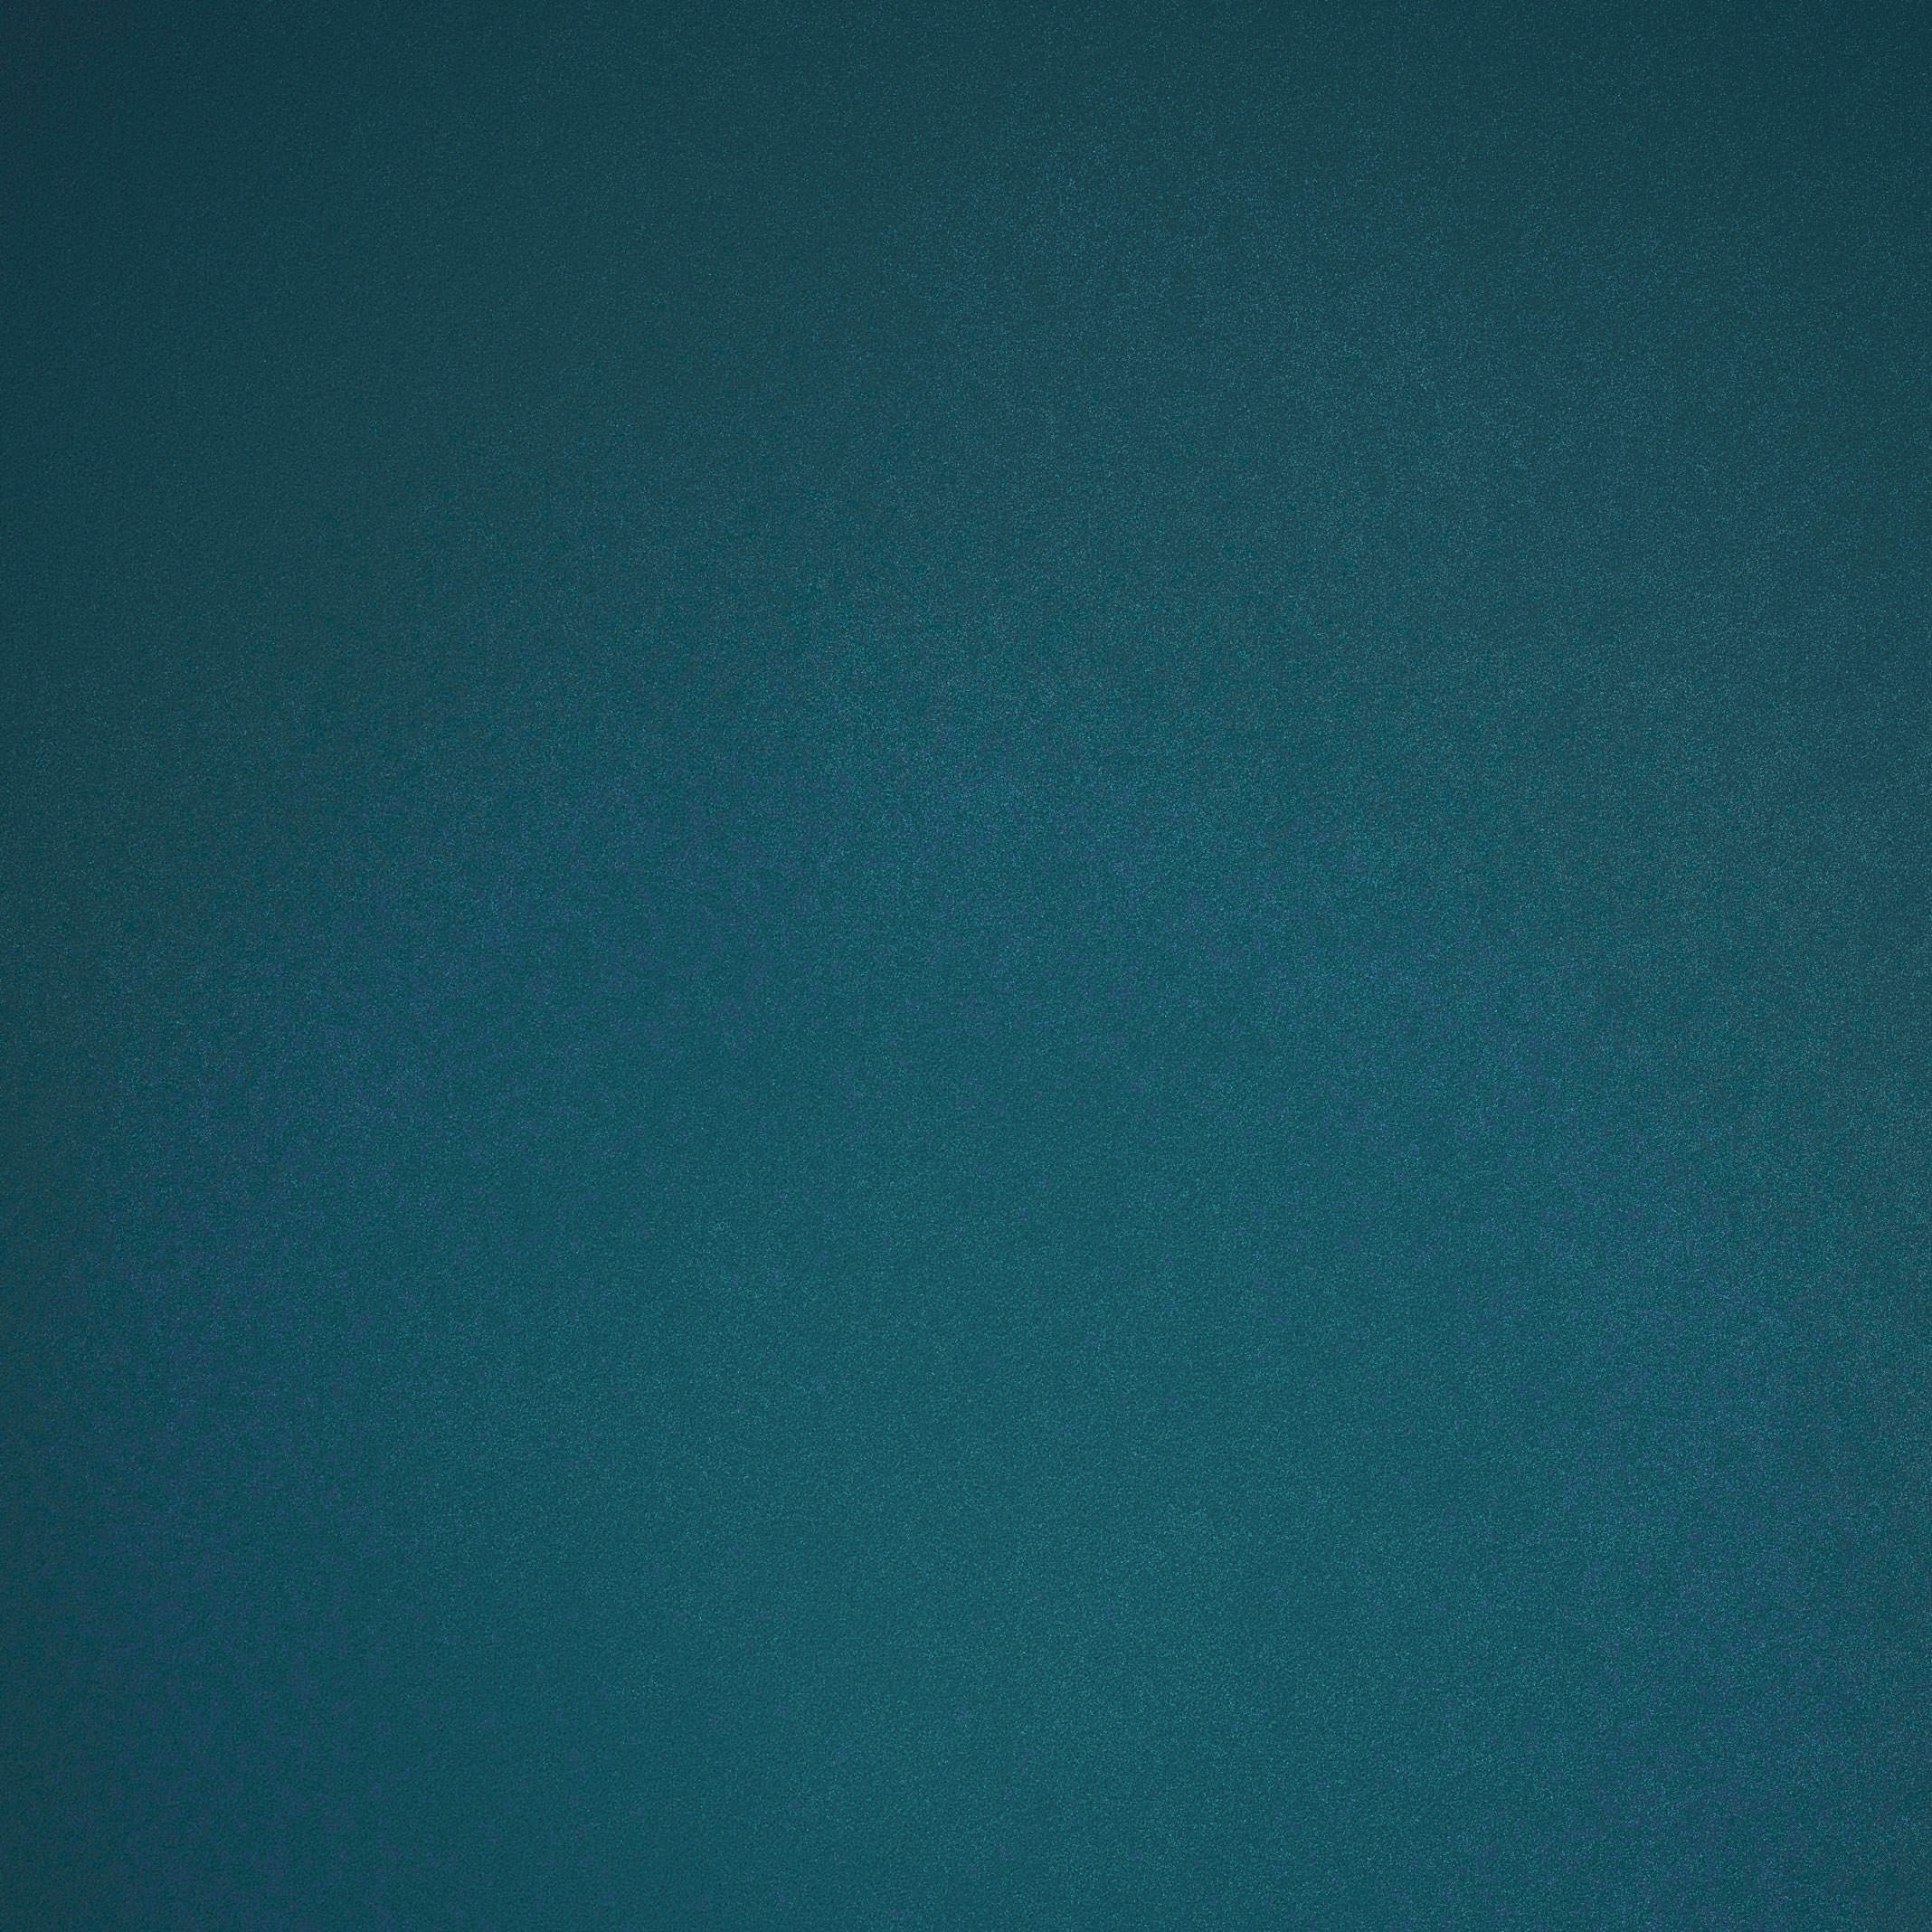 dark-blue-texture-wallpaper · Green